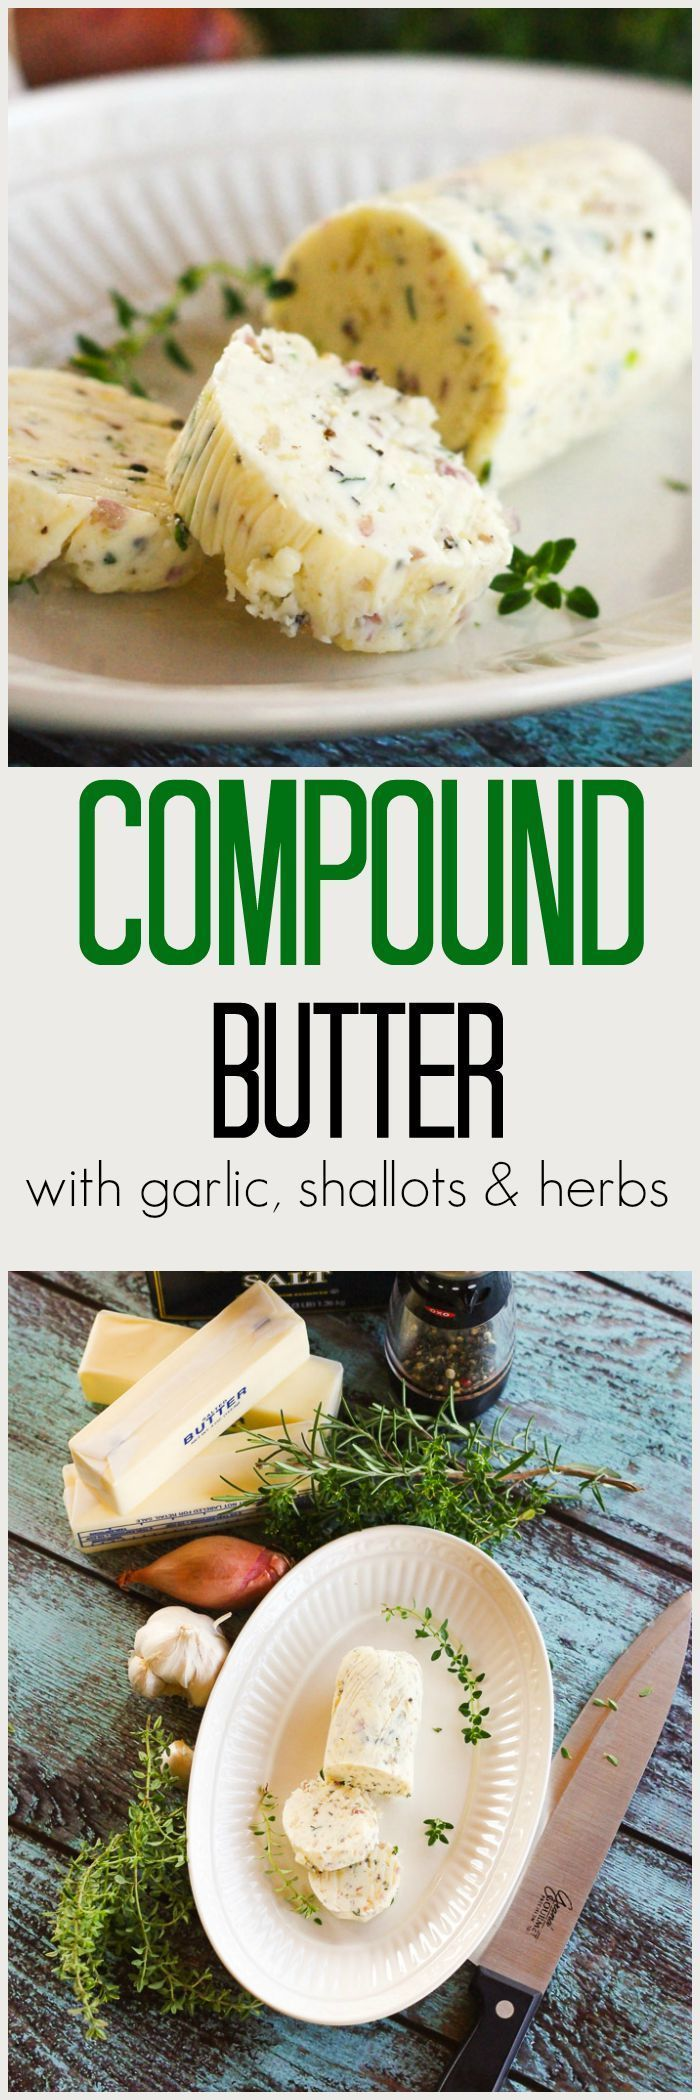 Compound Butter with Garlic, Shallots & Herbs   Home & Plate   www.homeandplate.com   The perfect topper for steaks, chicken and fish. Makes a thoughtful homemade holiday gift for the foodie in your life.